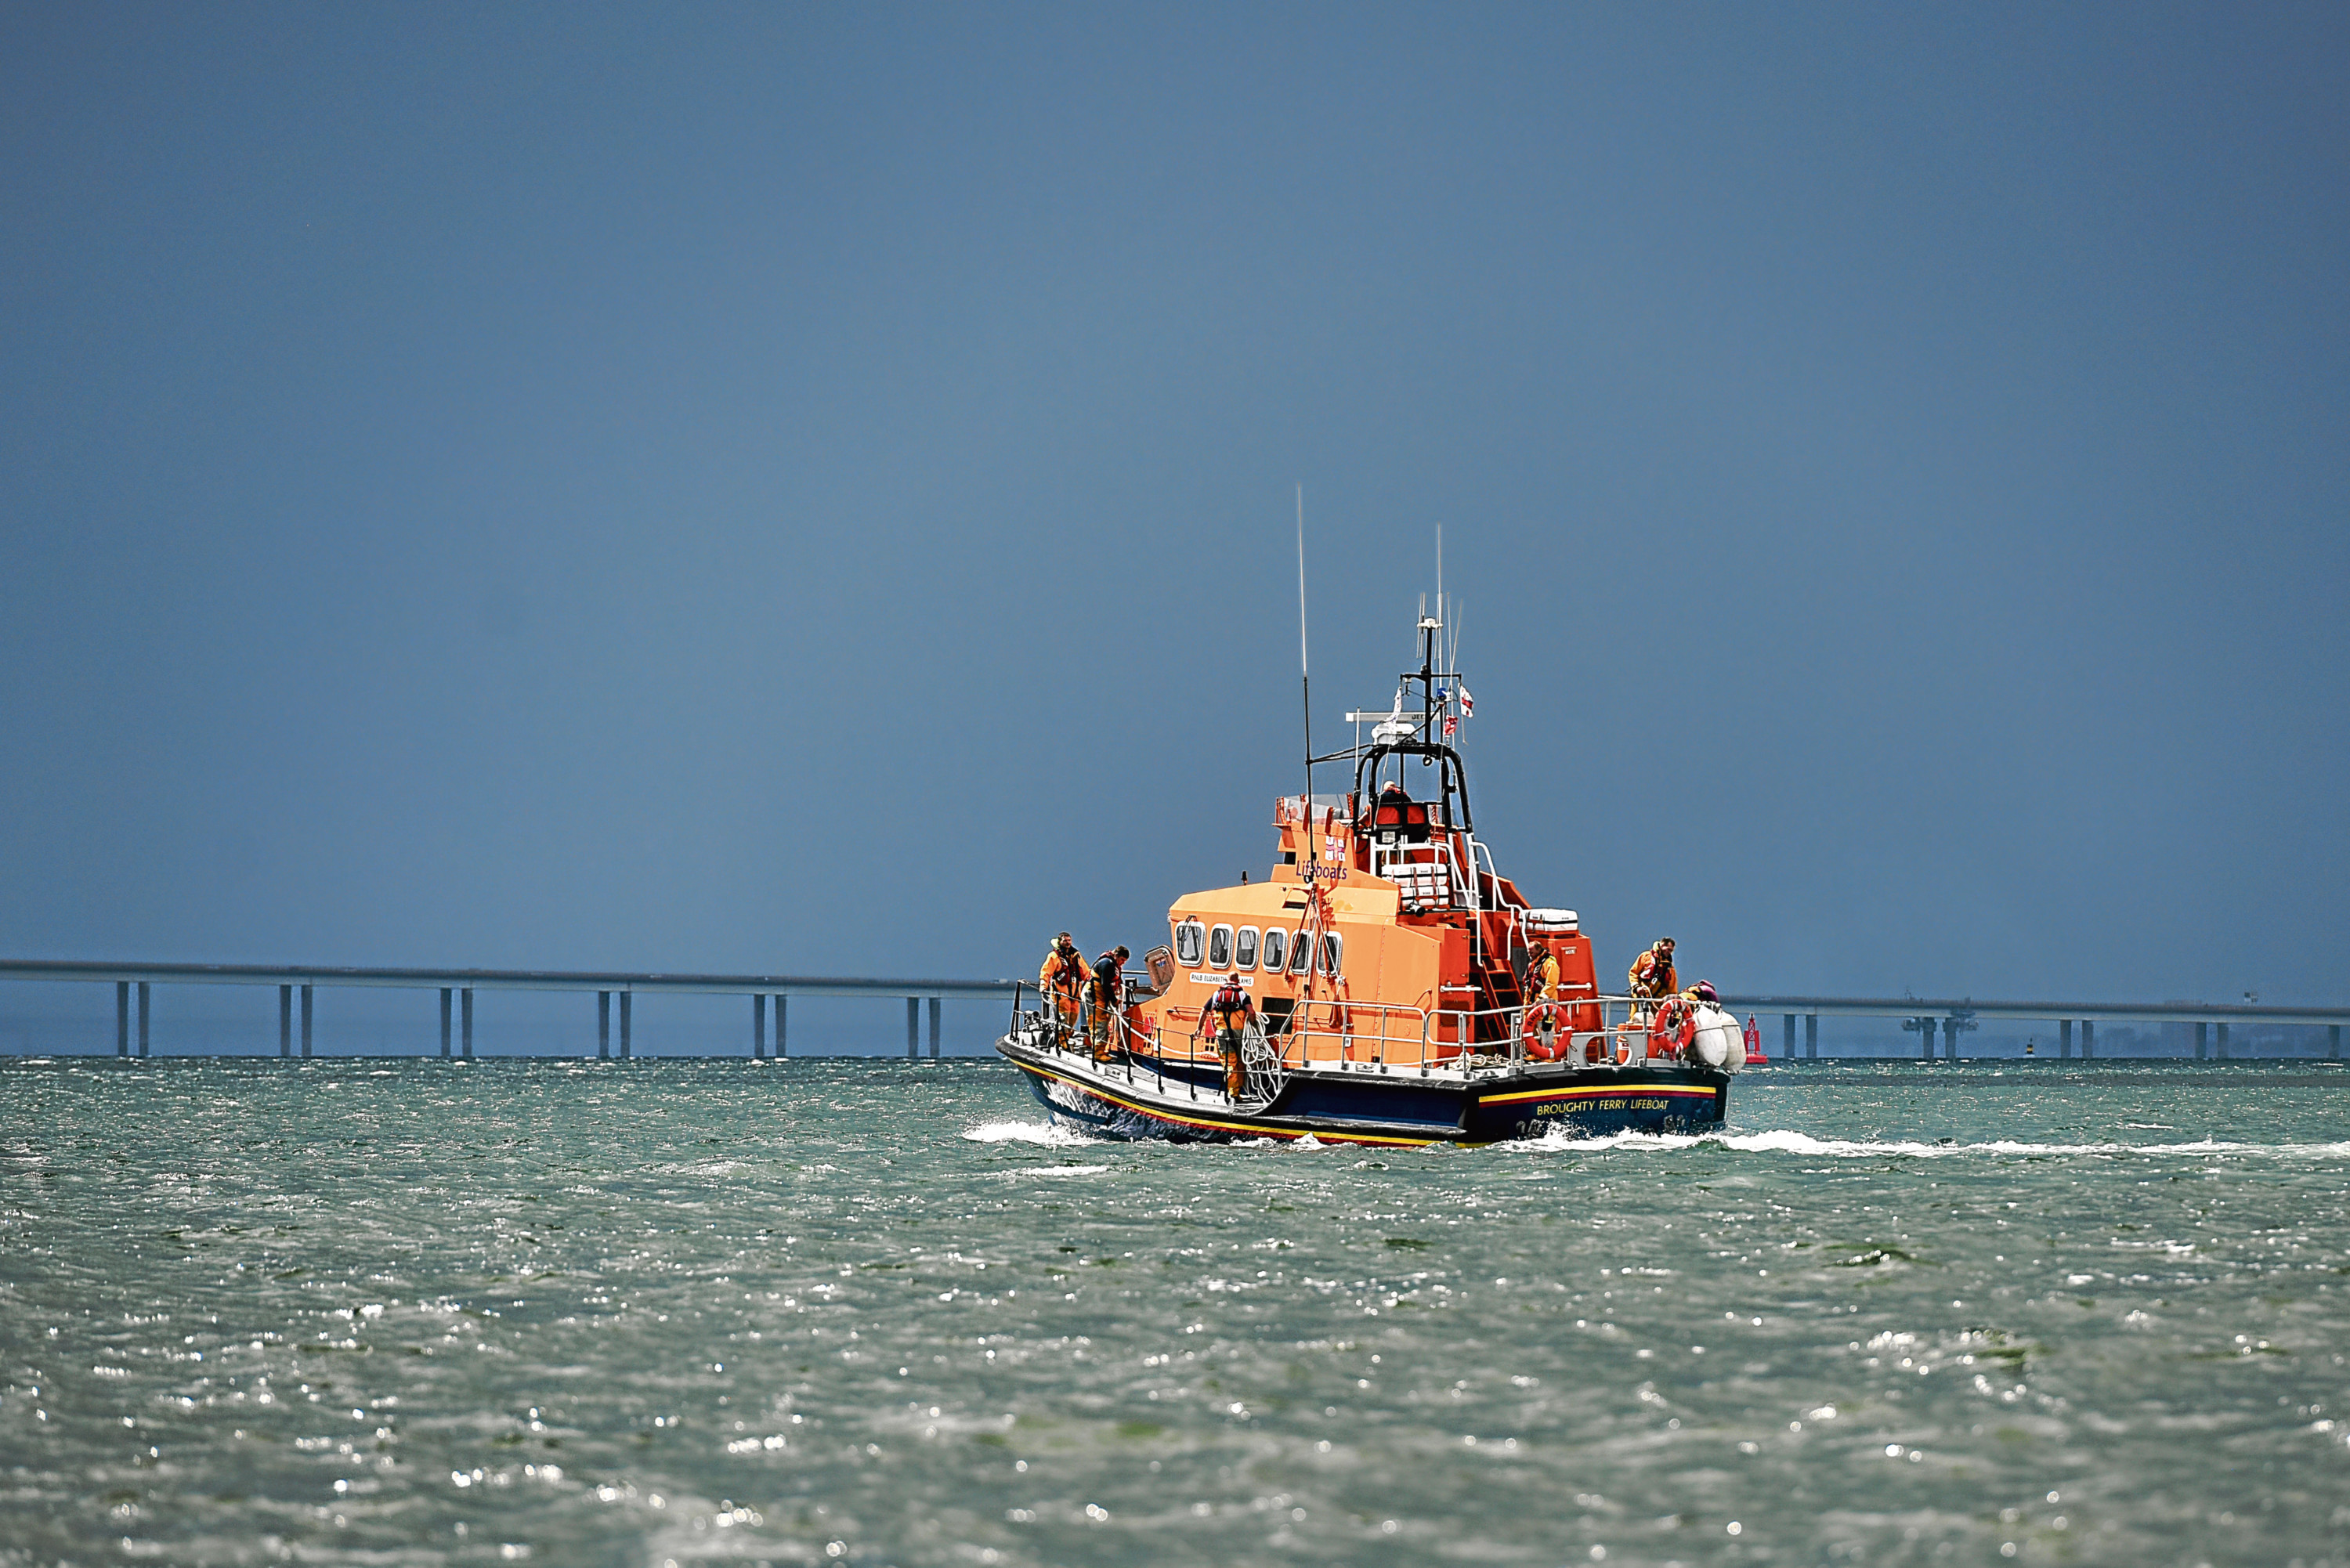 The Trent Class lifeboat based in Broughty Ferry out on another shout in the River Tay.